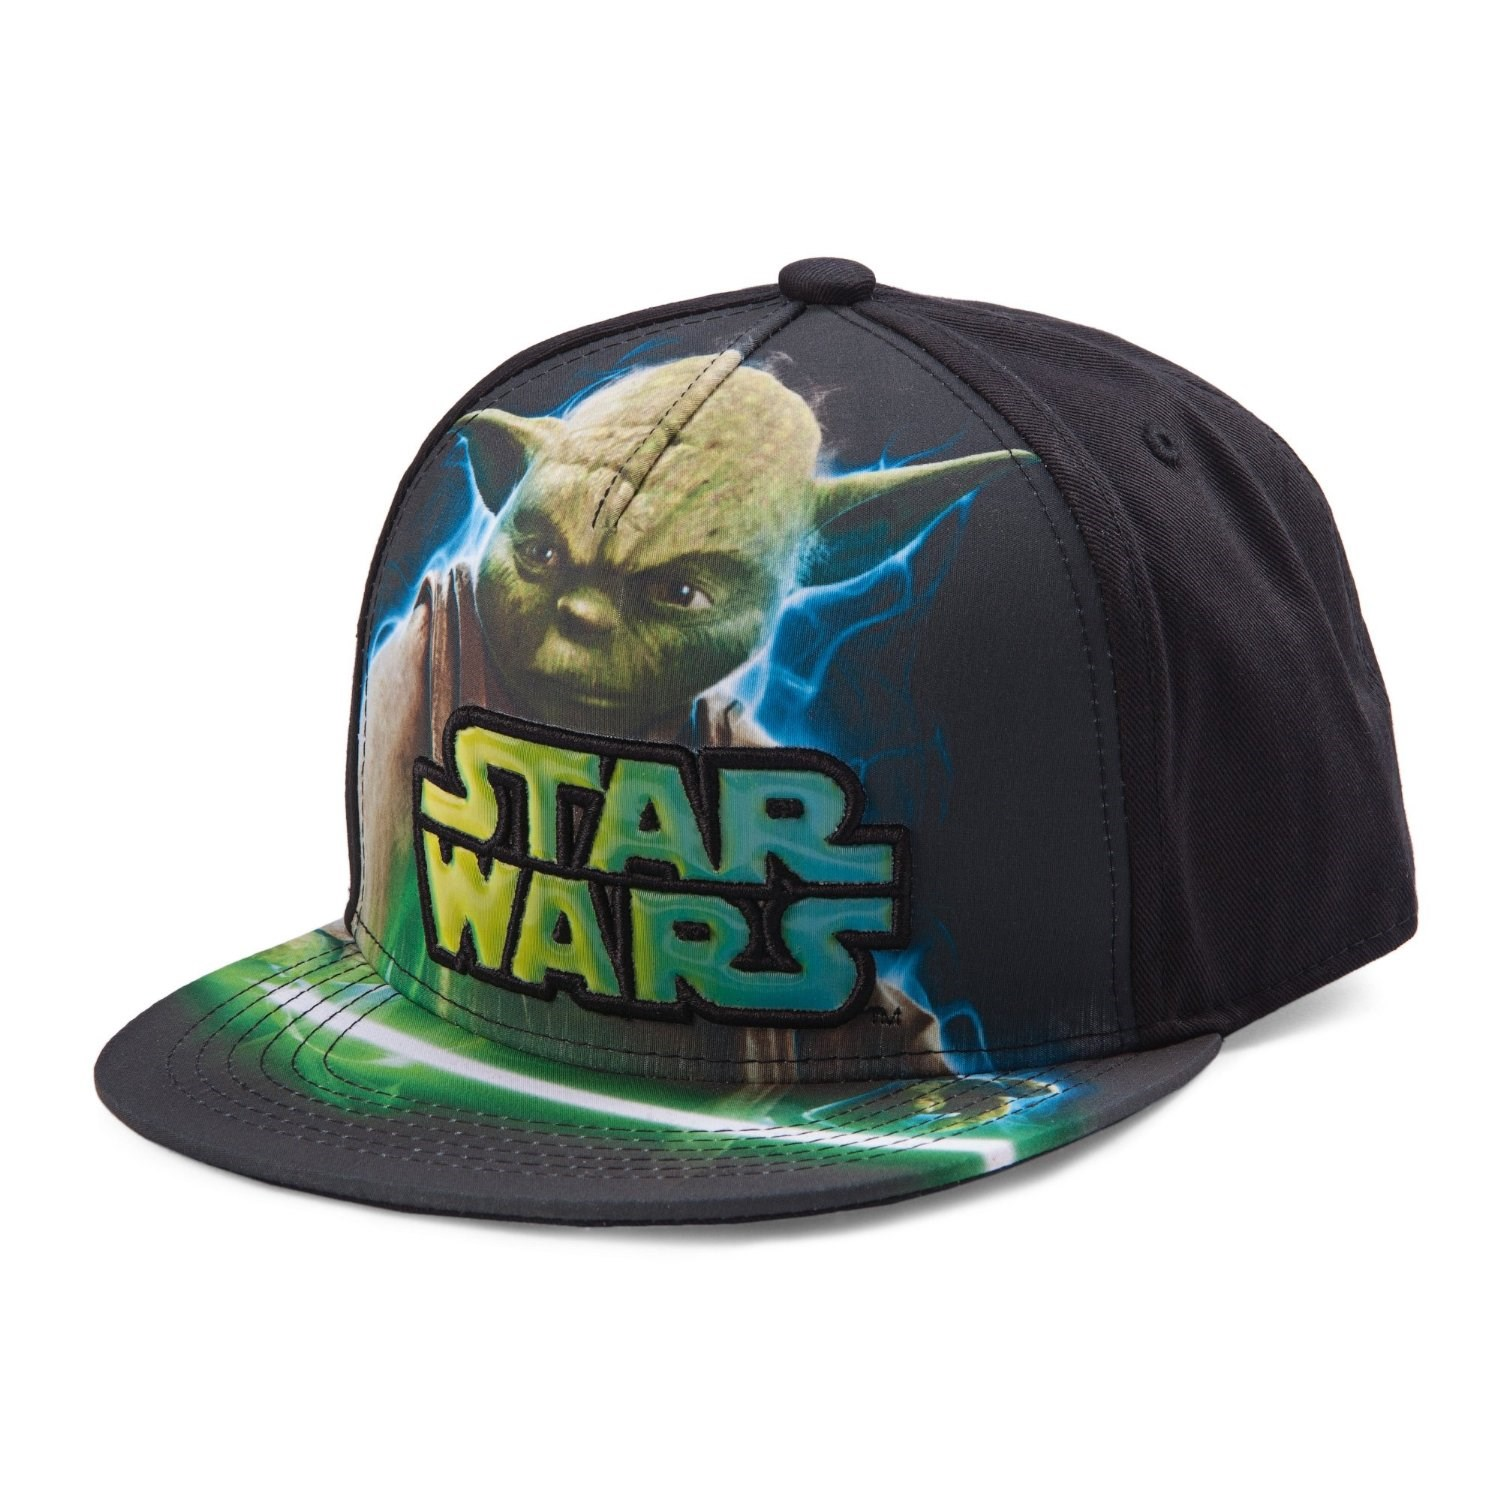 Star Wars Yoda Boys Snapback Hat